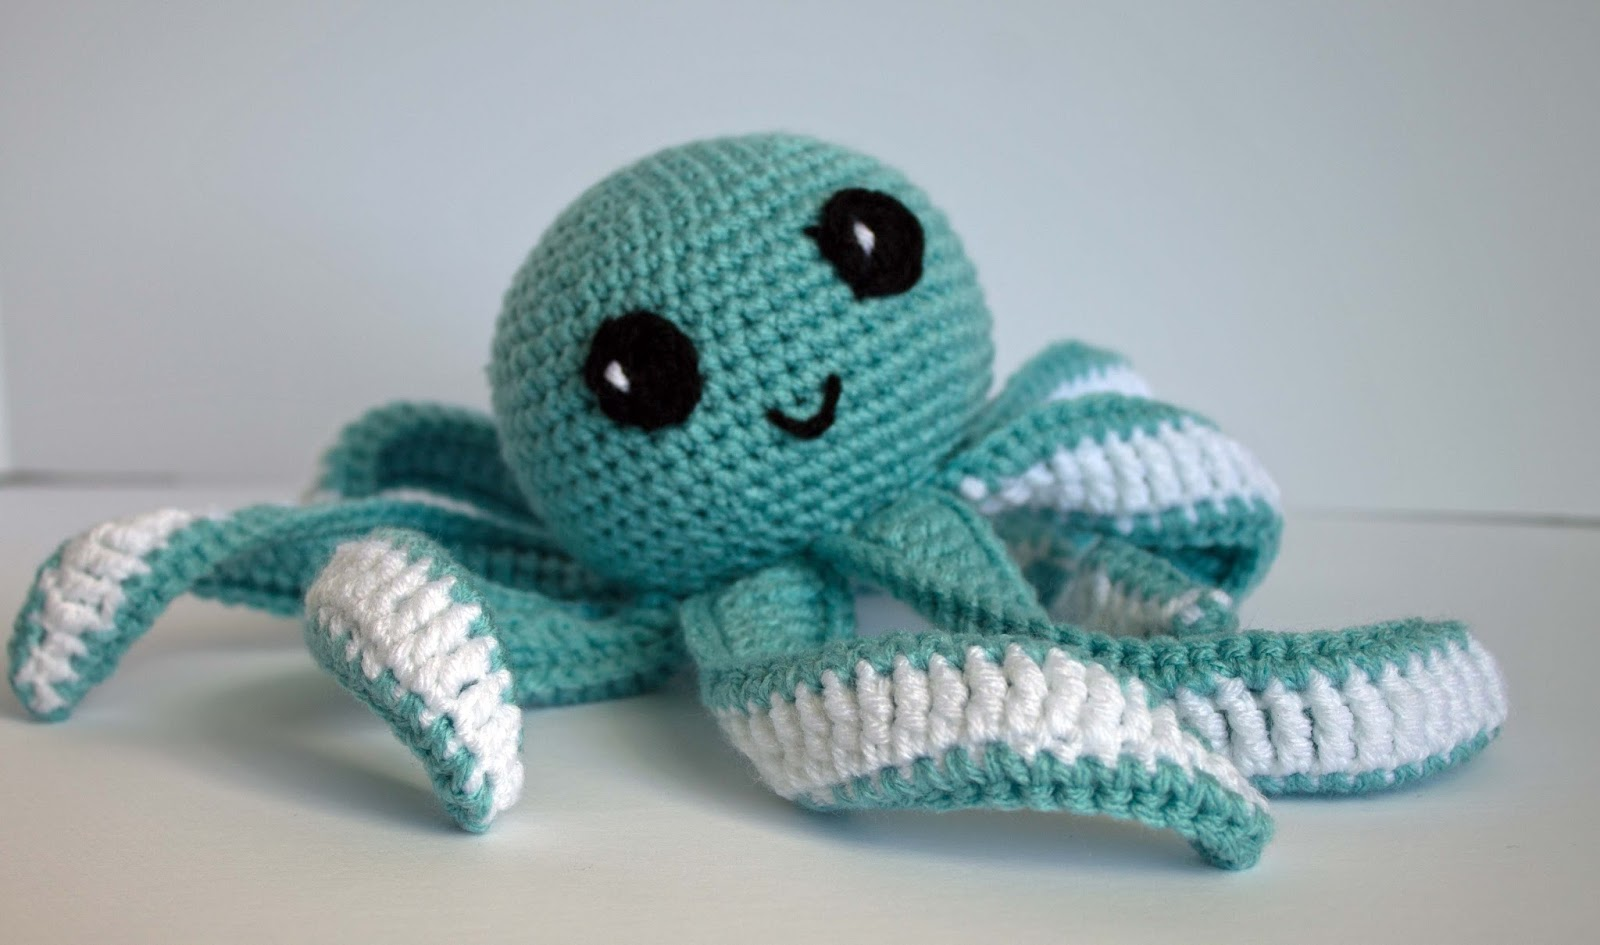 Amigurumi Octopus Baby Toy Free Pattern Part 2 - The Friendly Red Fox